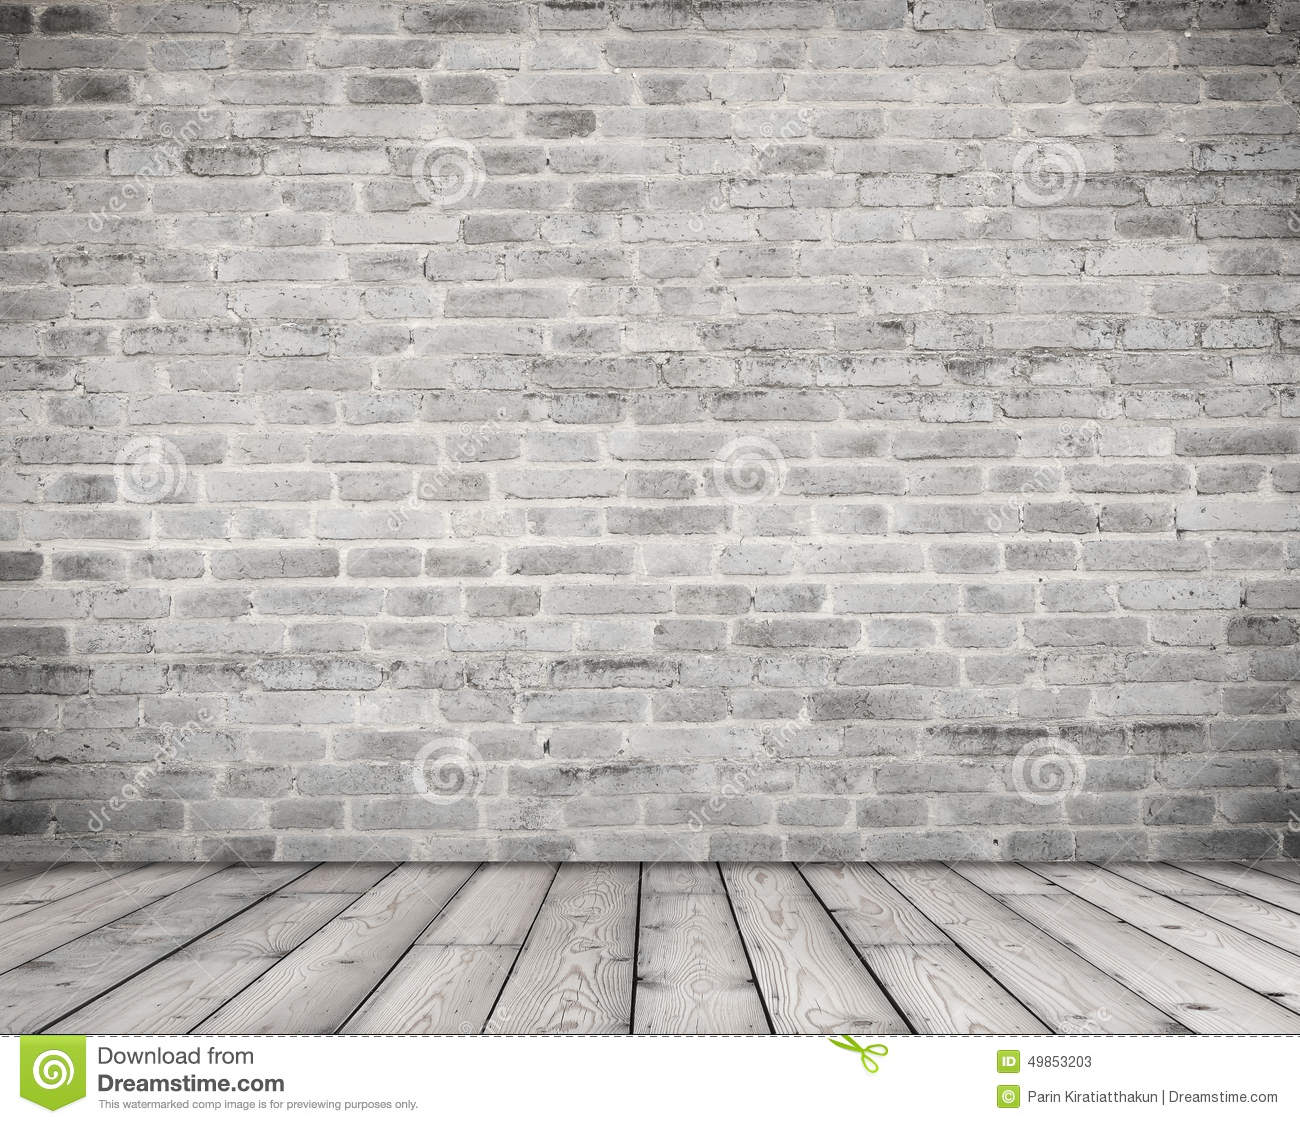 Brick Wall Stock Photo - Image: 49853203